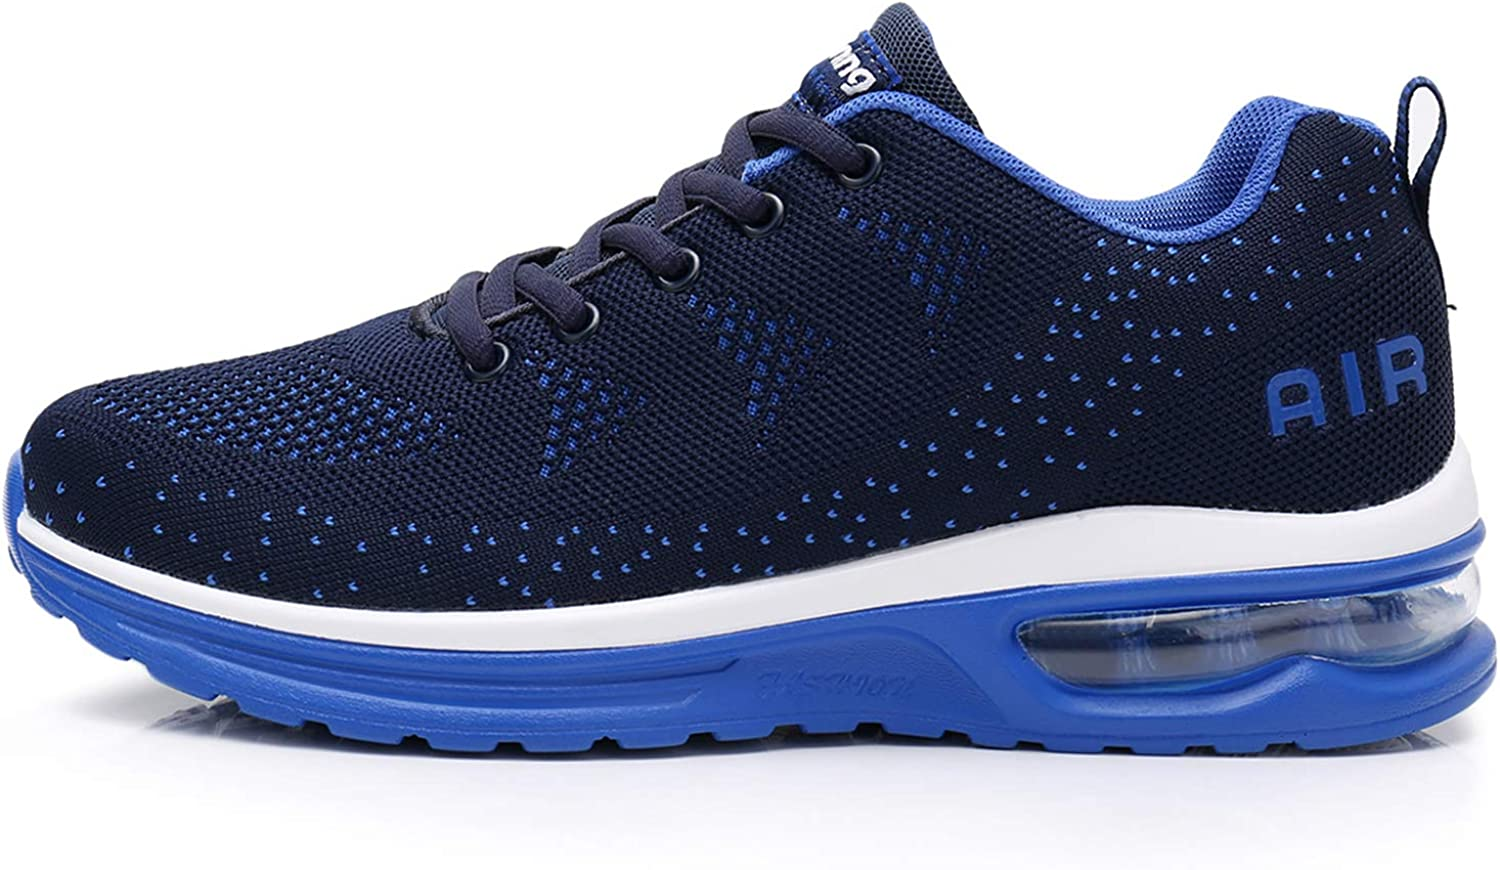 AMAXM Mens Athletic Air Running Shoes Breathable Tennis Lightweight Jogging Gym Sneakers/ M US6.5-11.5 D